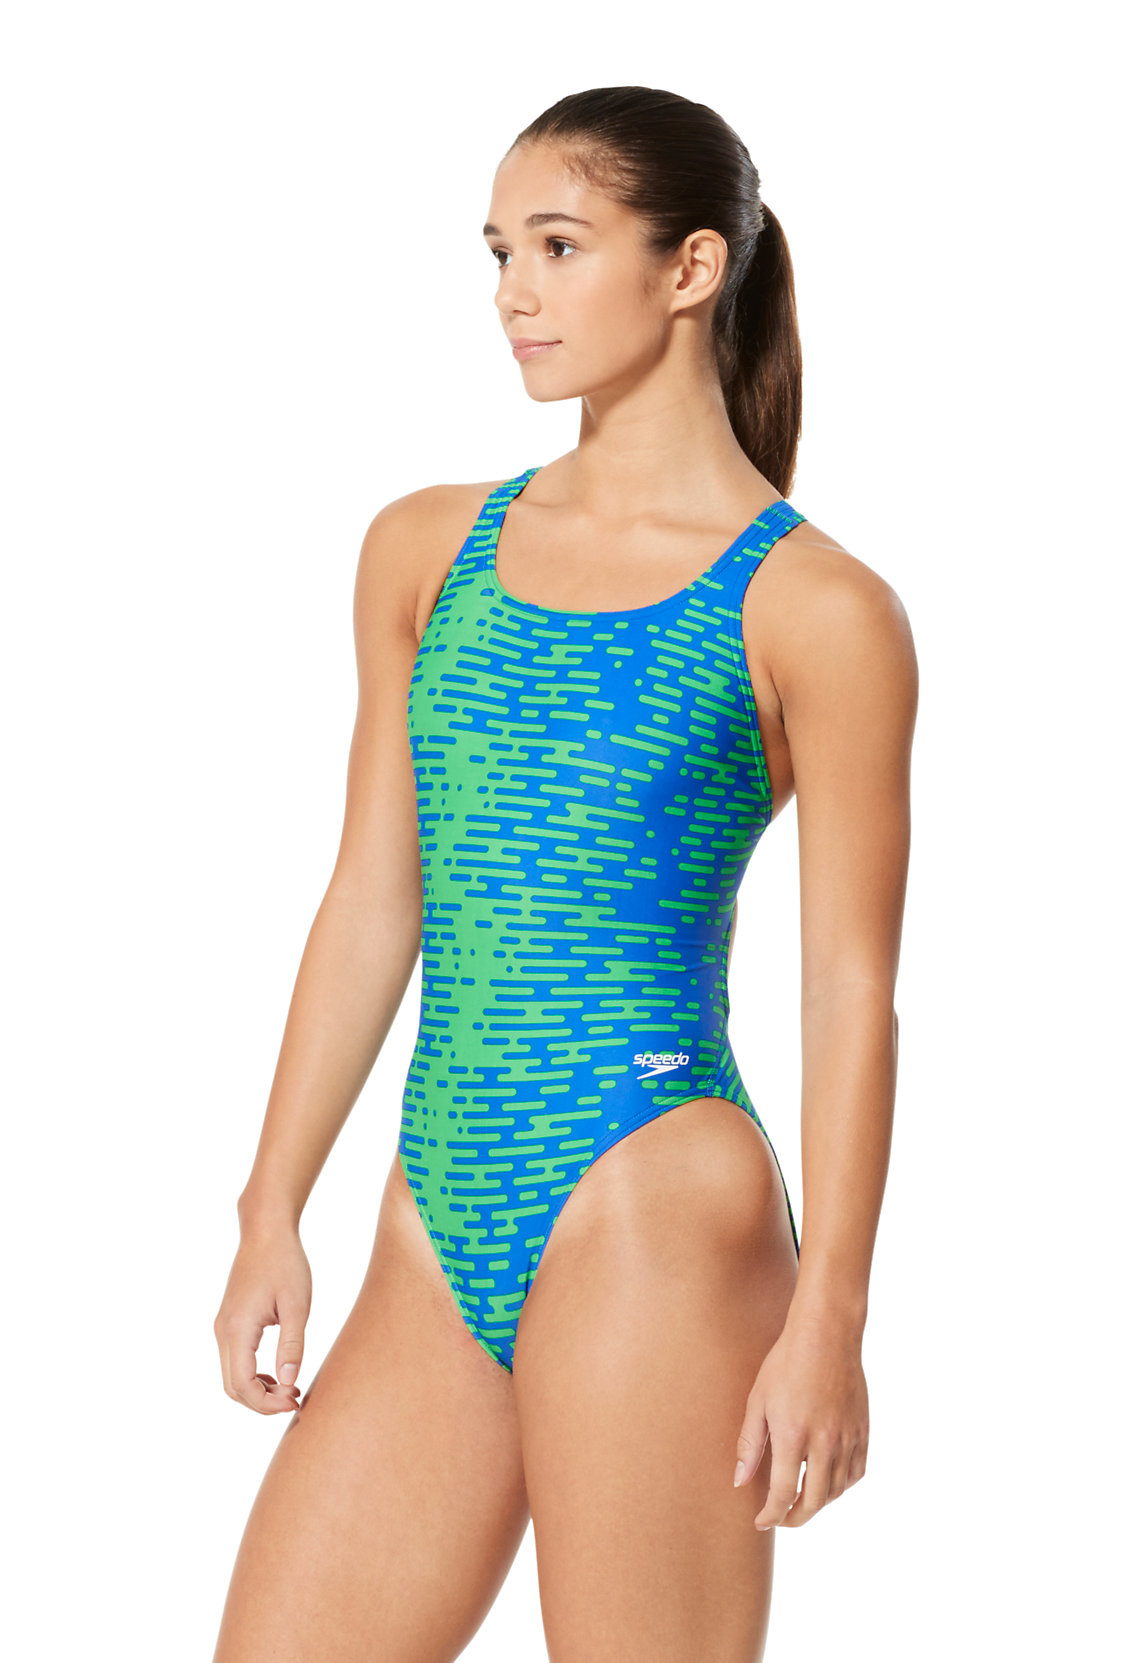 Speedo Modern Matrix Super Pro